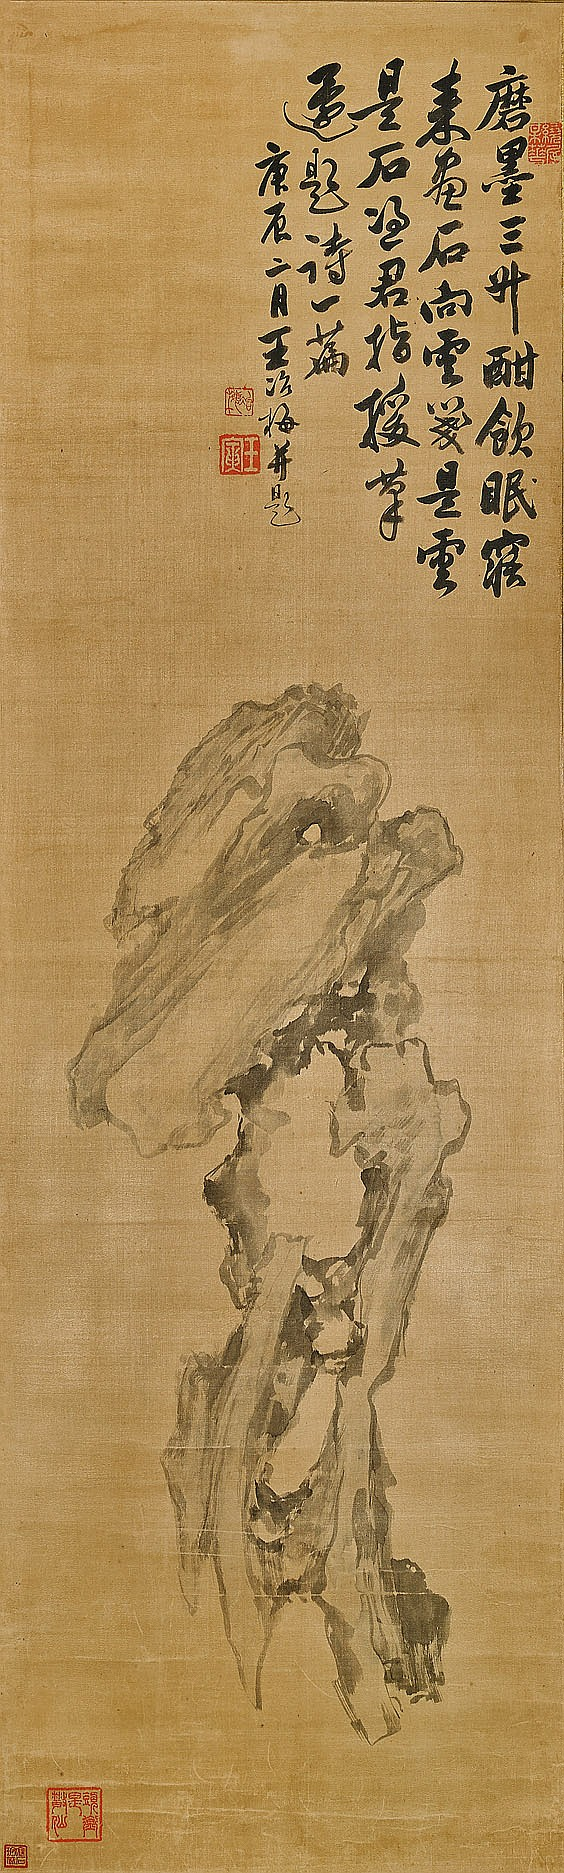 CHINESE PAINTING BY WANG YIN: Scholar's Rocks